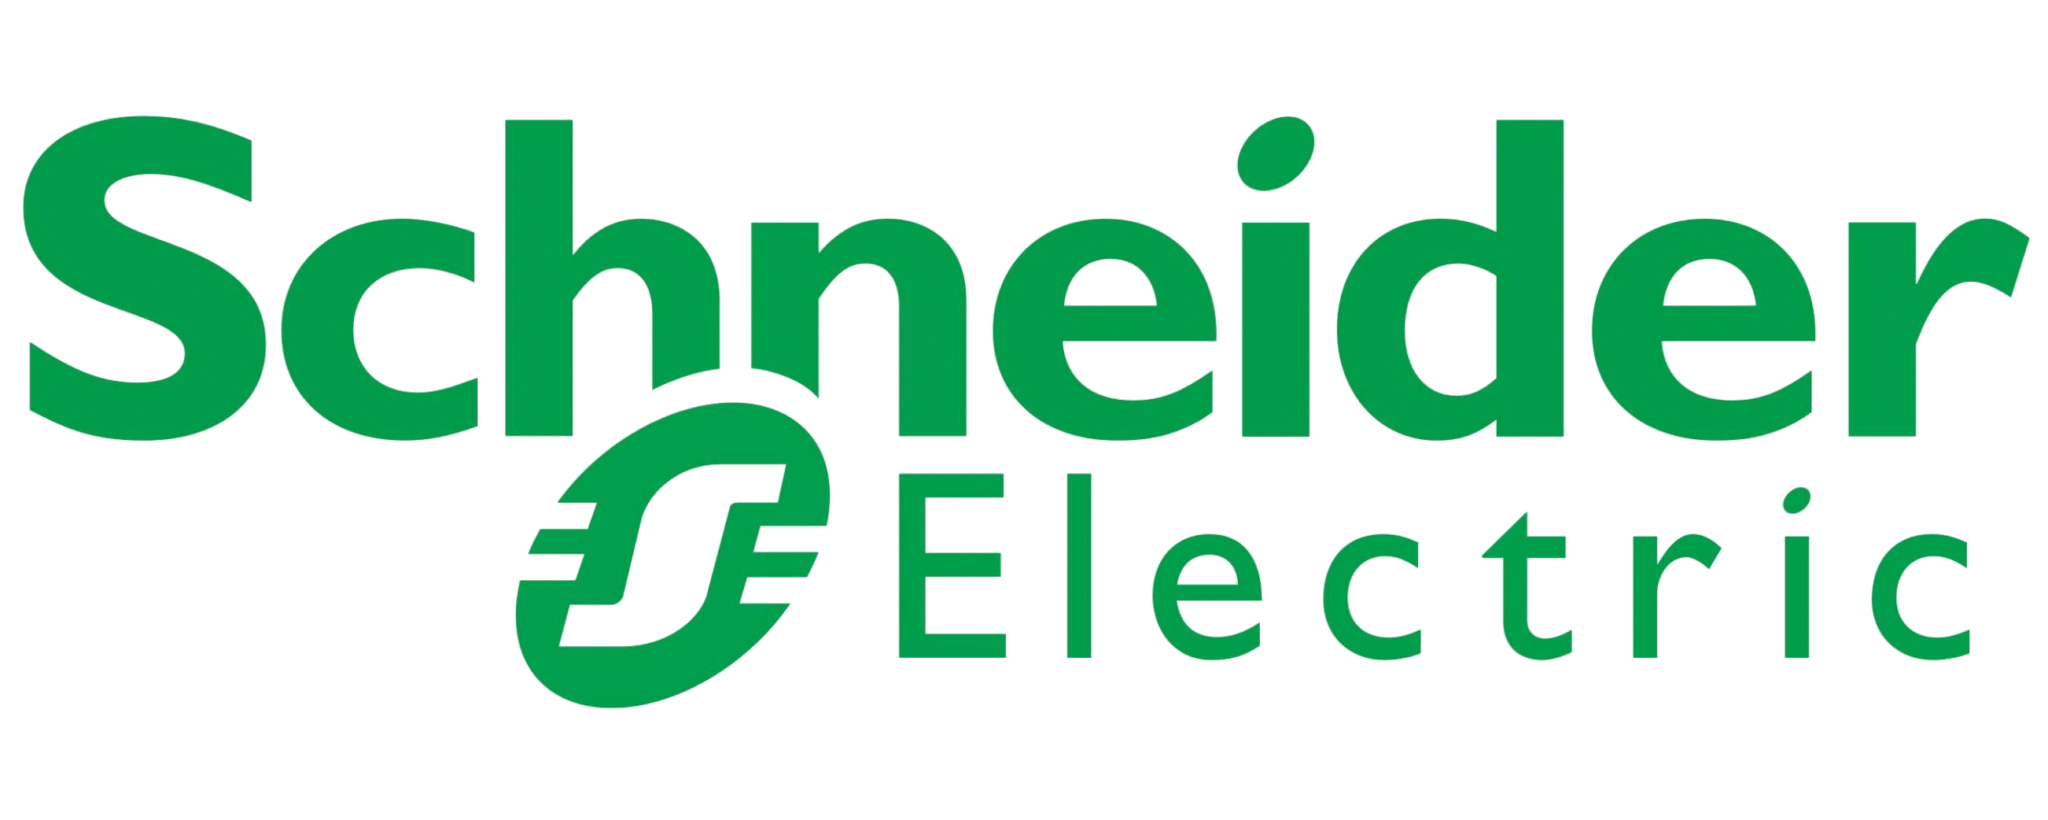 Merten Schneider Electric